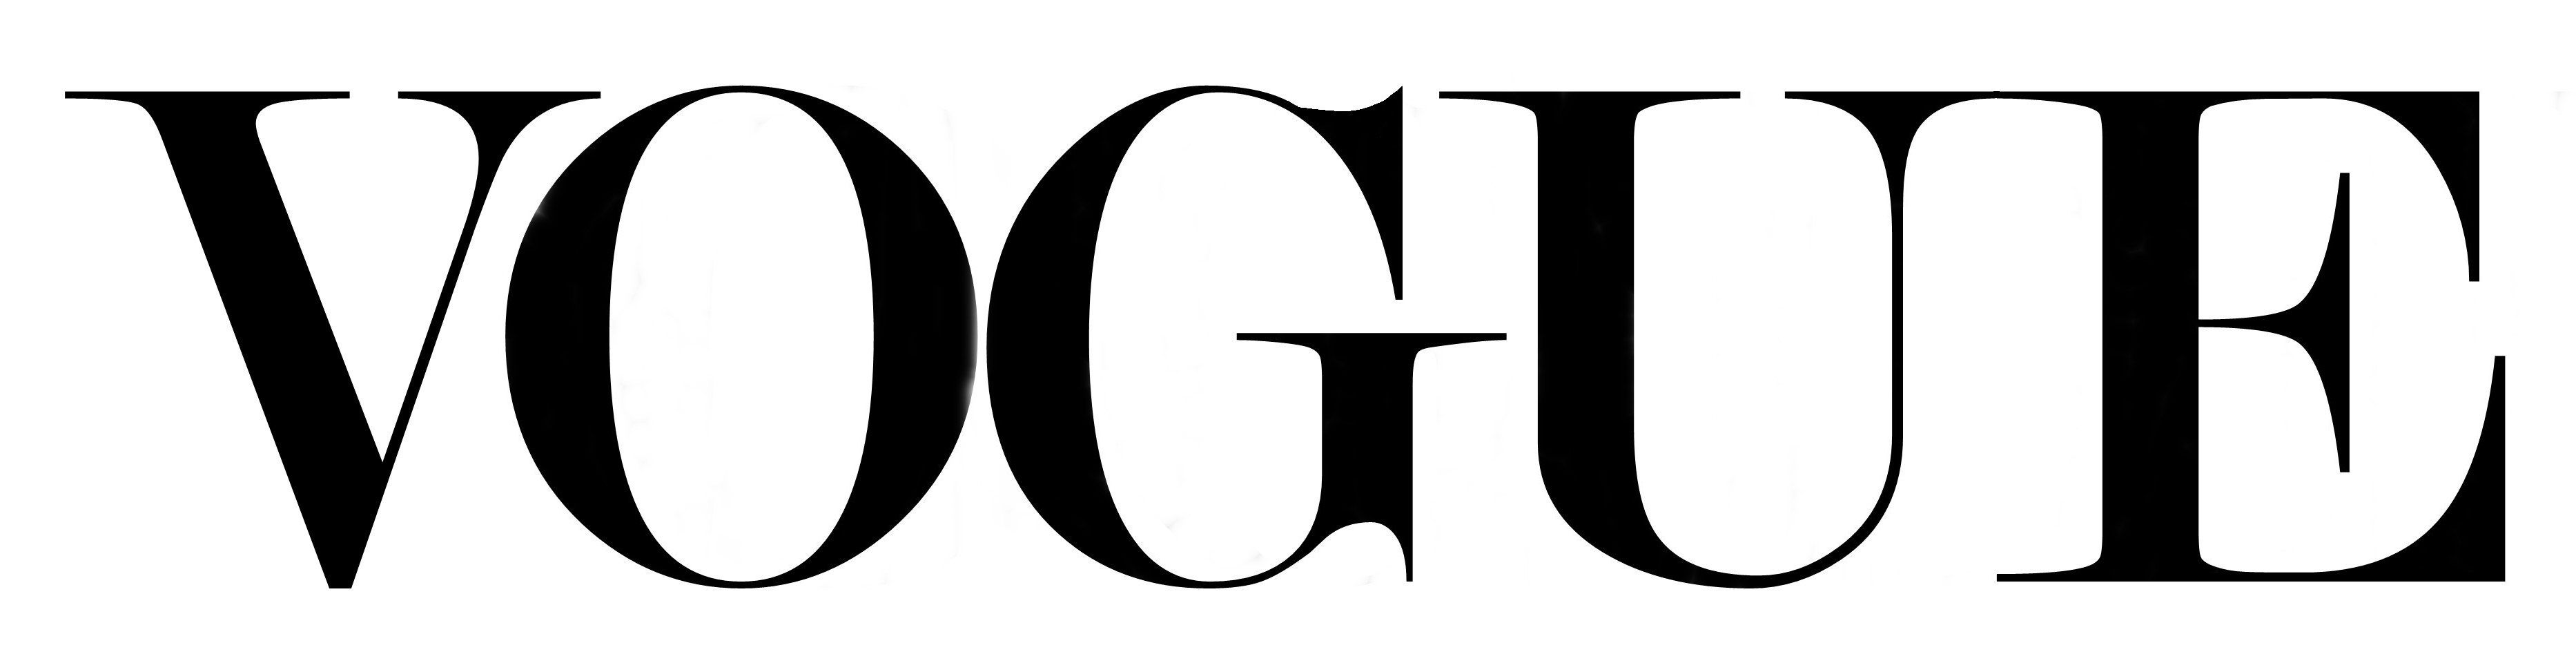 http www newscorpaustralia com brand vogue australia productions rh pinterest co uk  vogue logo font name